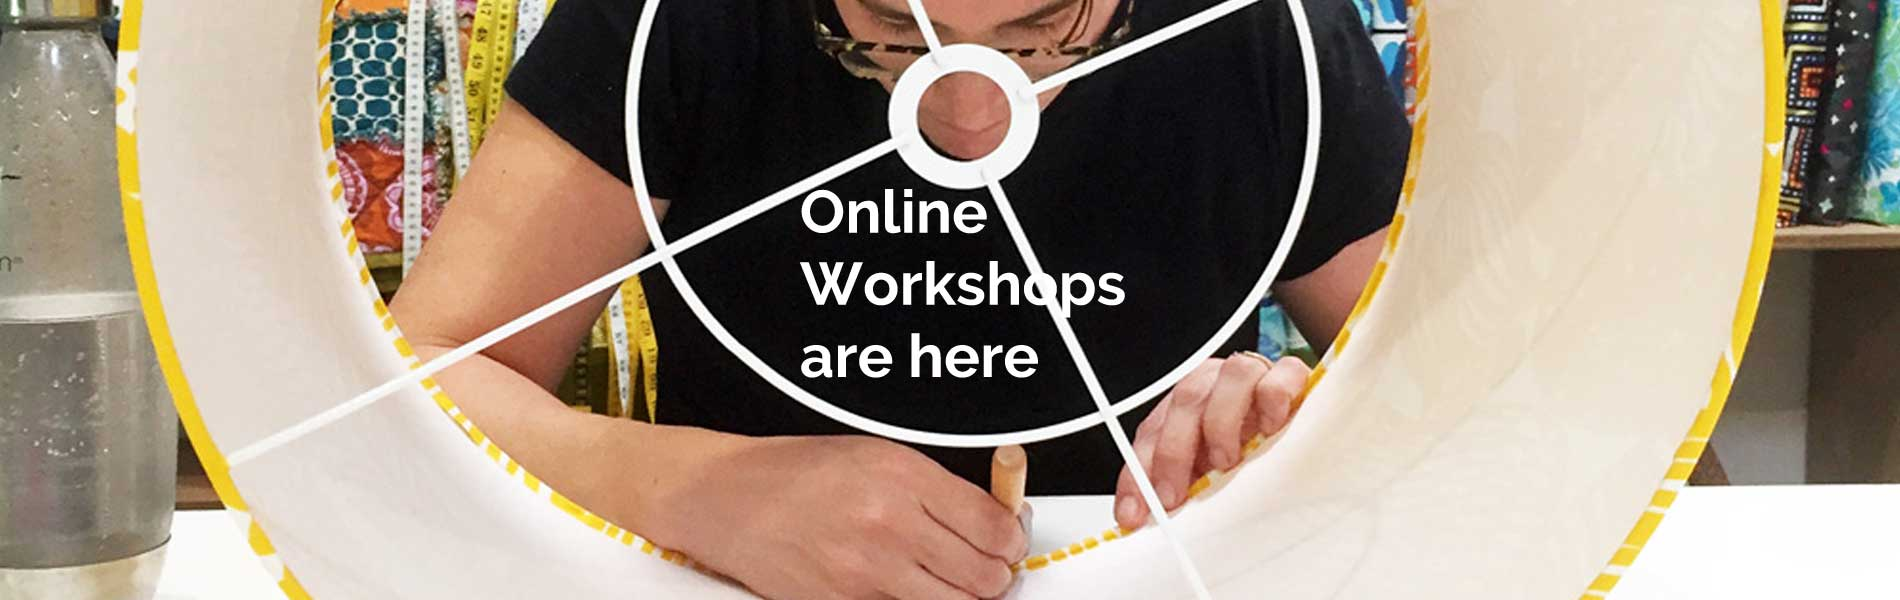 Online workshops are here